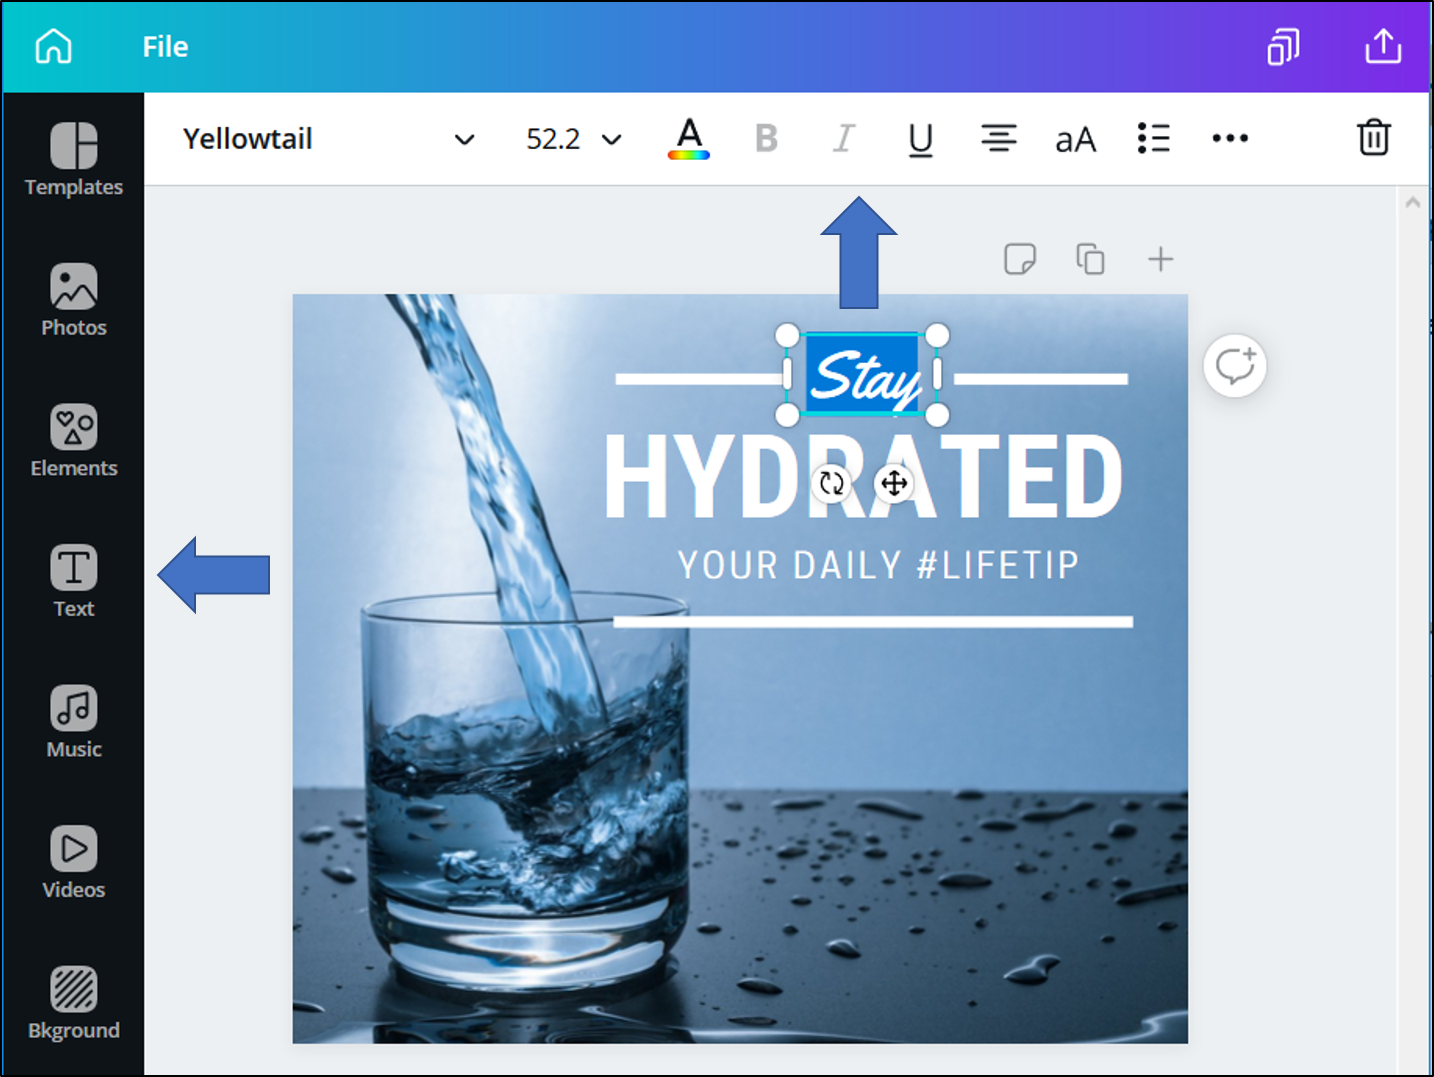 Design editor within Canva. Arrows are pointing to the text editor bar at the top and to the icon for additional textboxes on the left